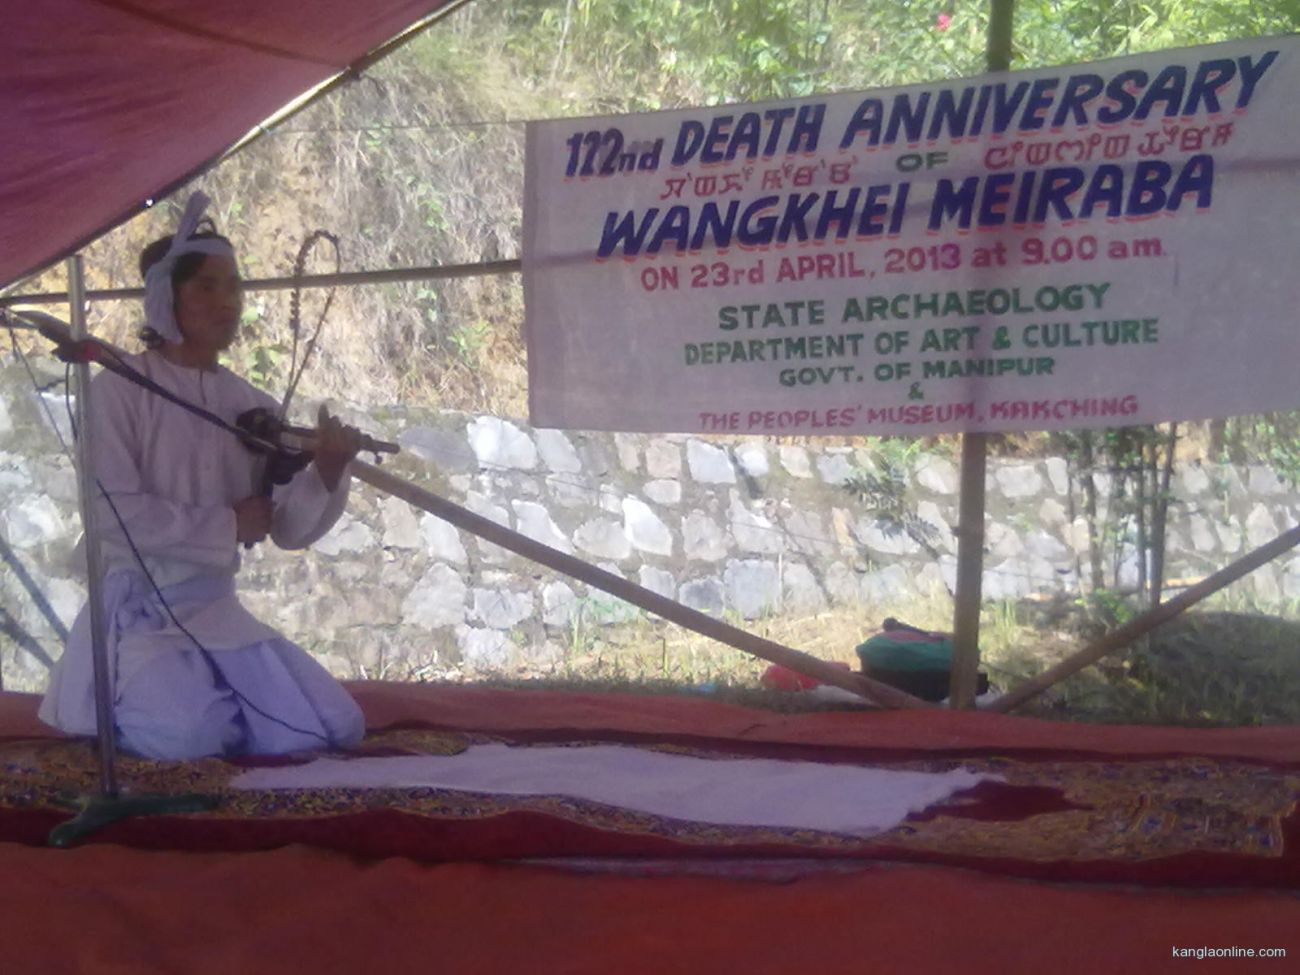 Remembering Wangkhei Meiraba: A Forgotten Hero